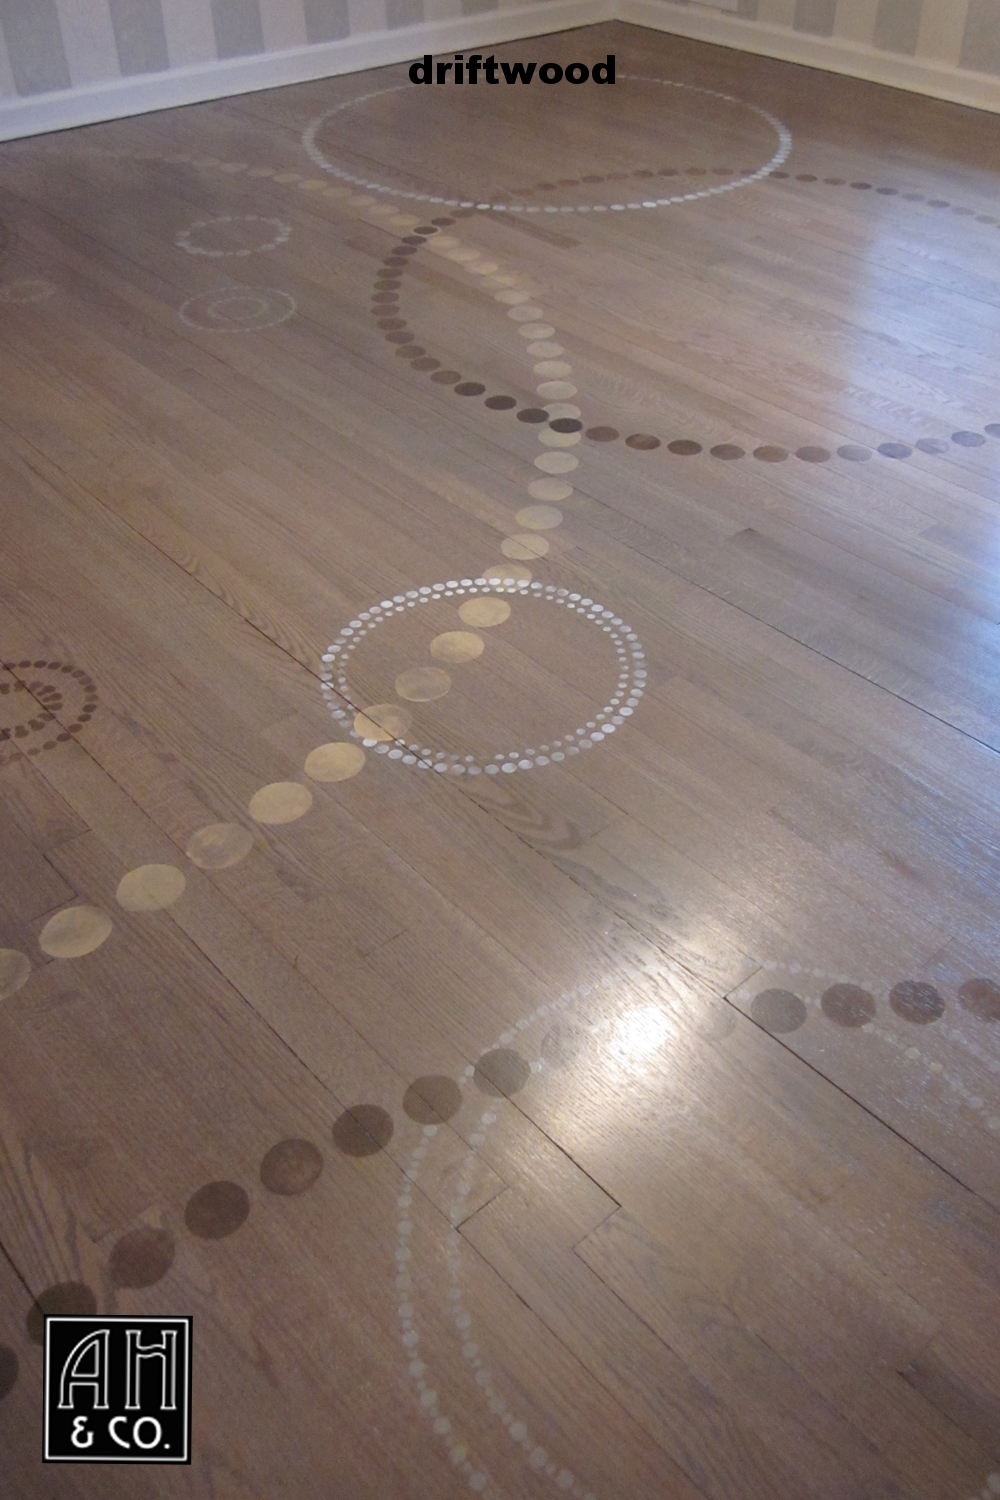 DRIFTWOOD CIRCLE PATTERN WOOD FLOOR TREATMENT